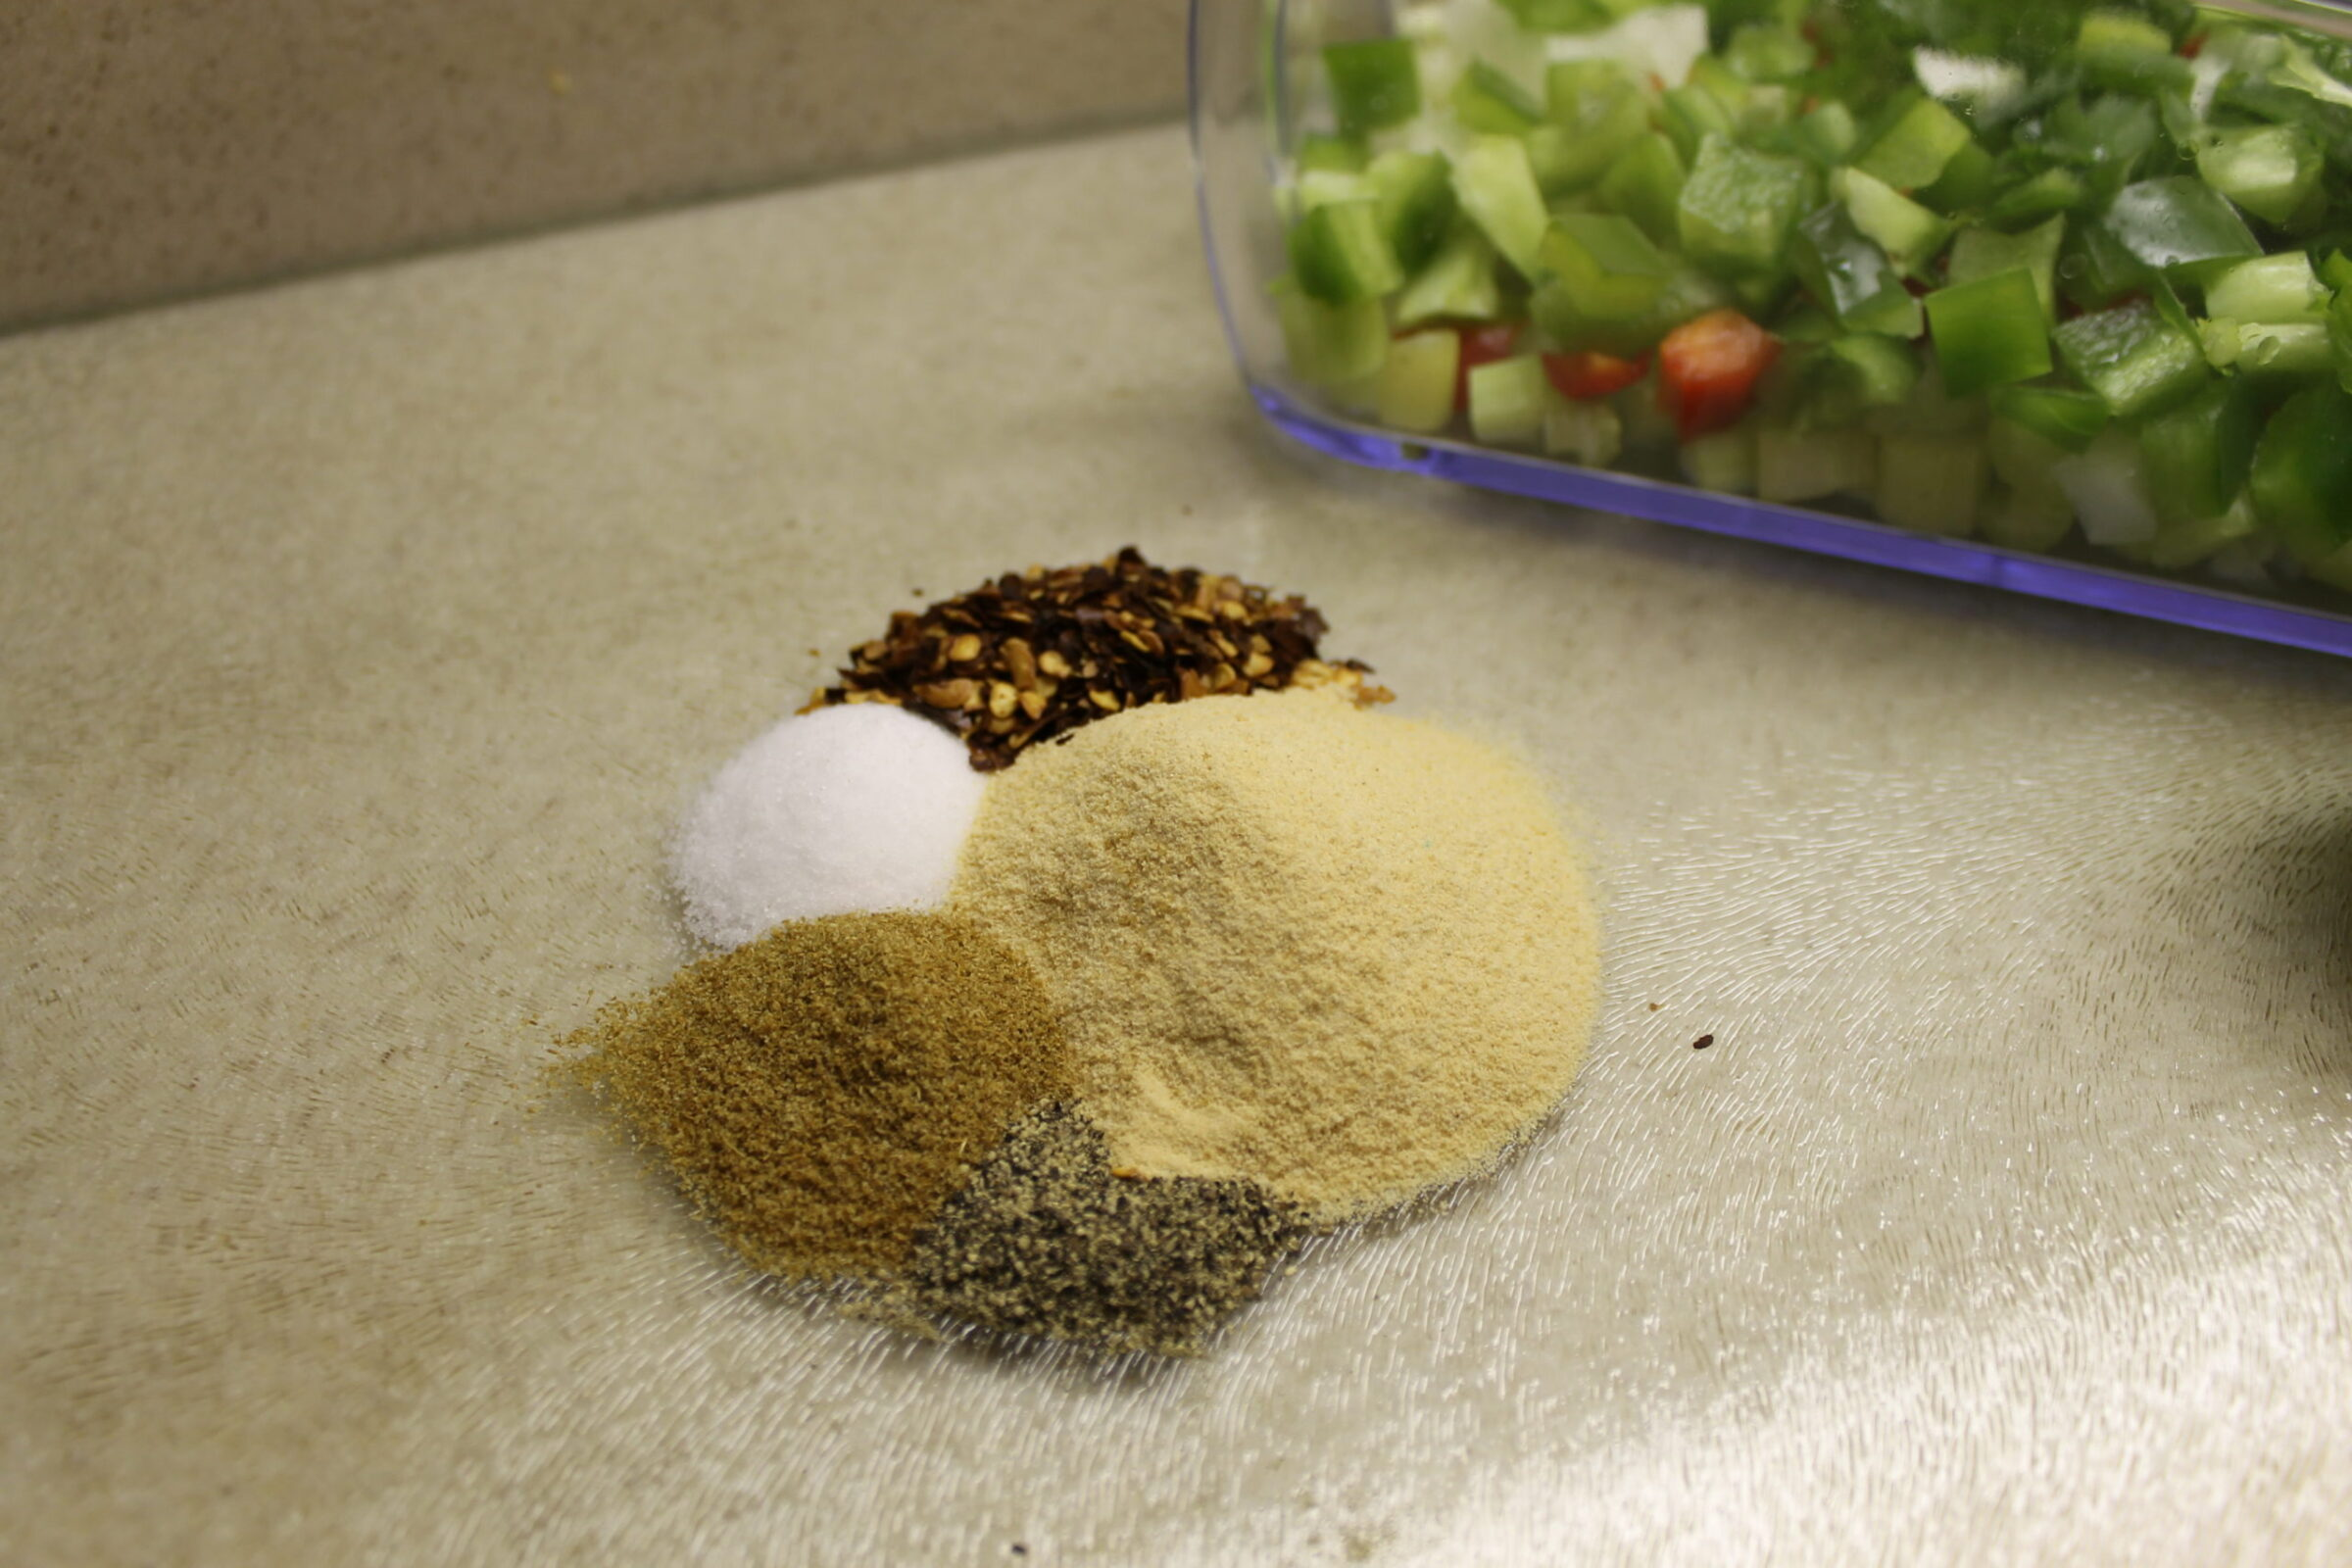 Measure out spices